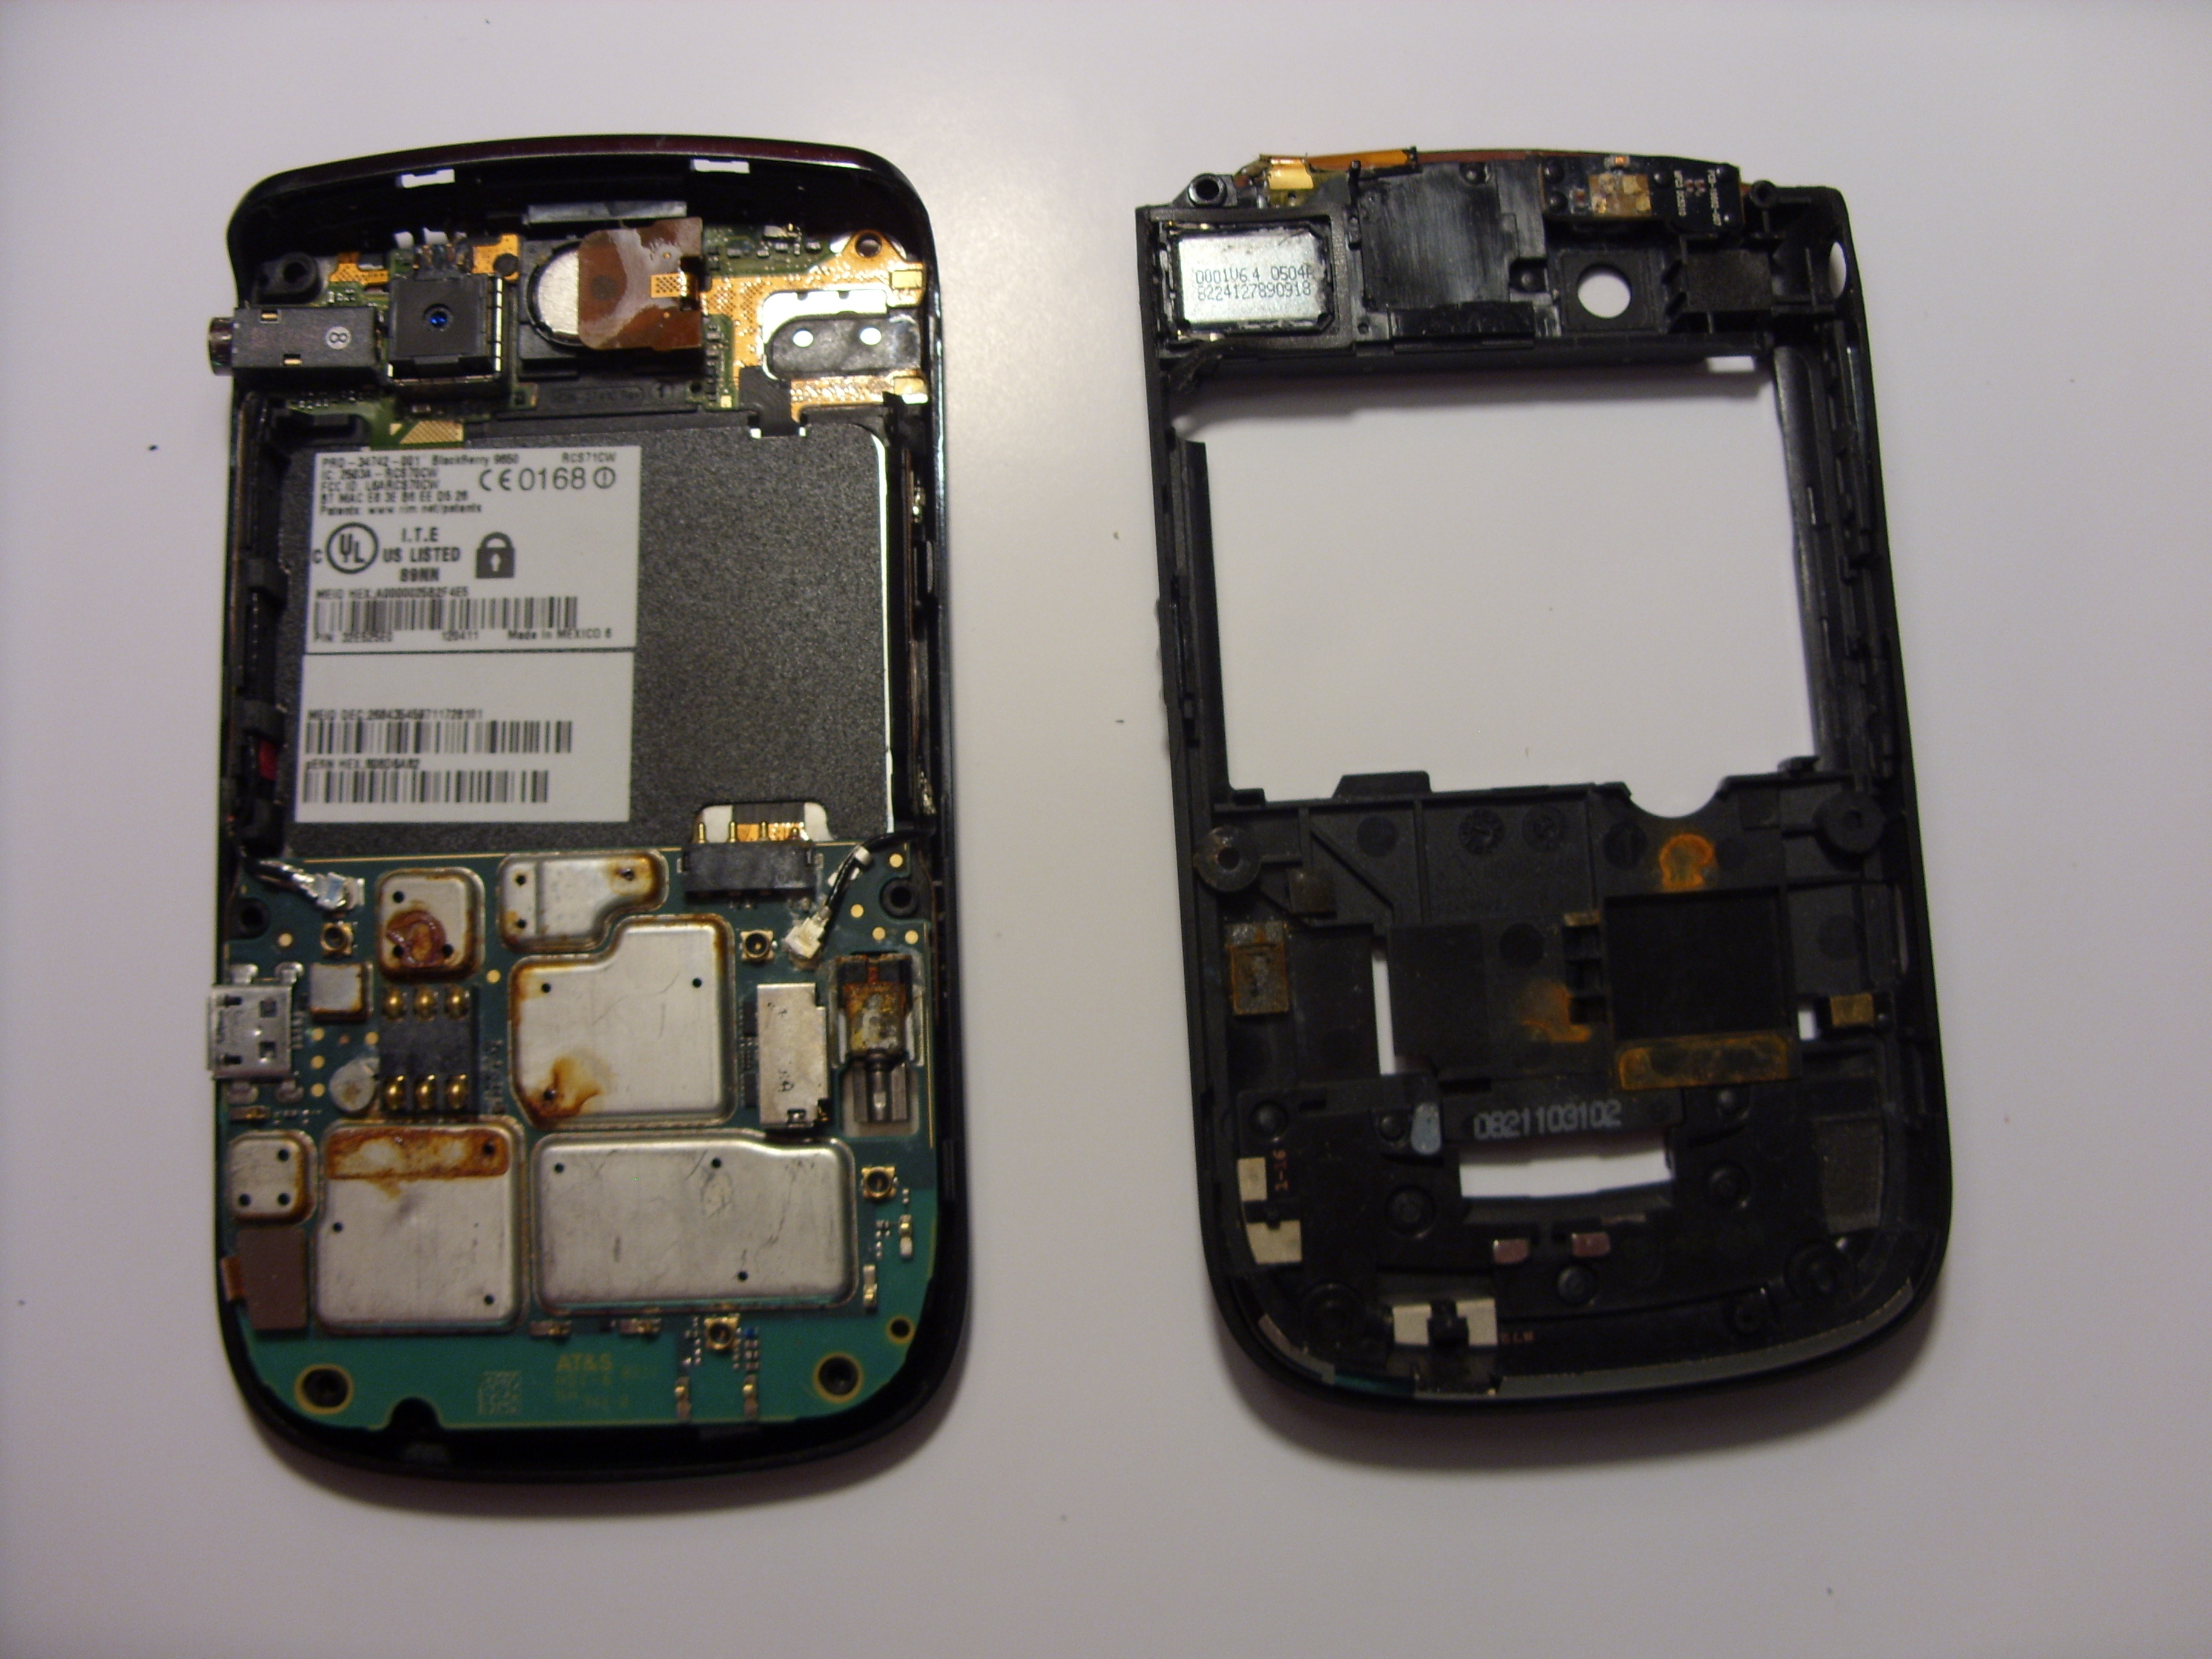 Blackberry bold 9650 back chassis replacement ifixit repair guide.